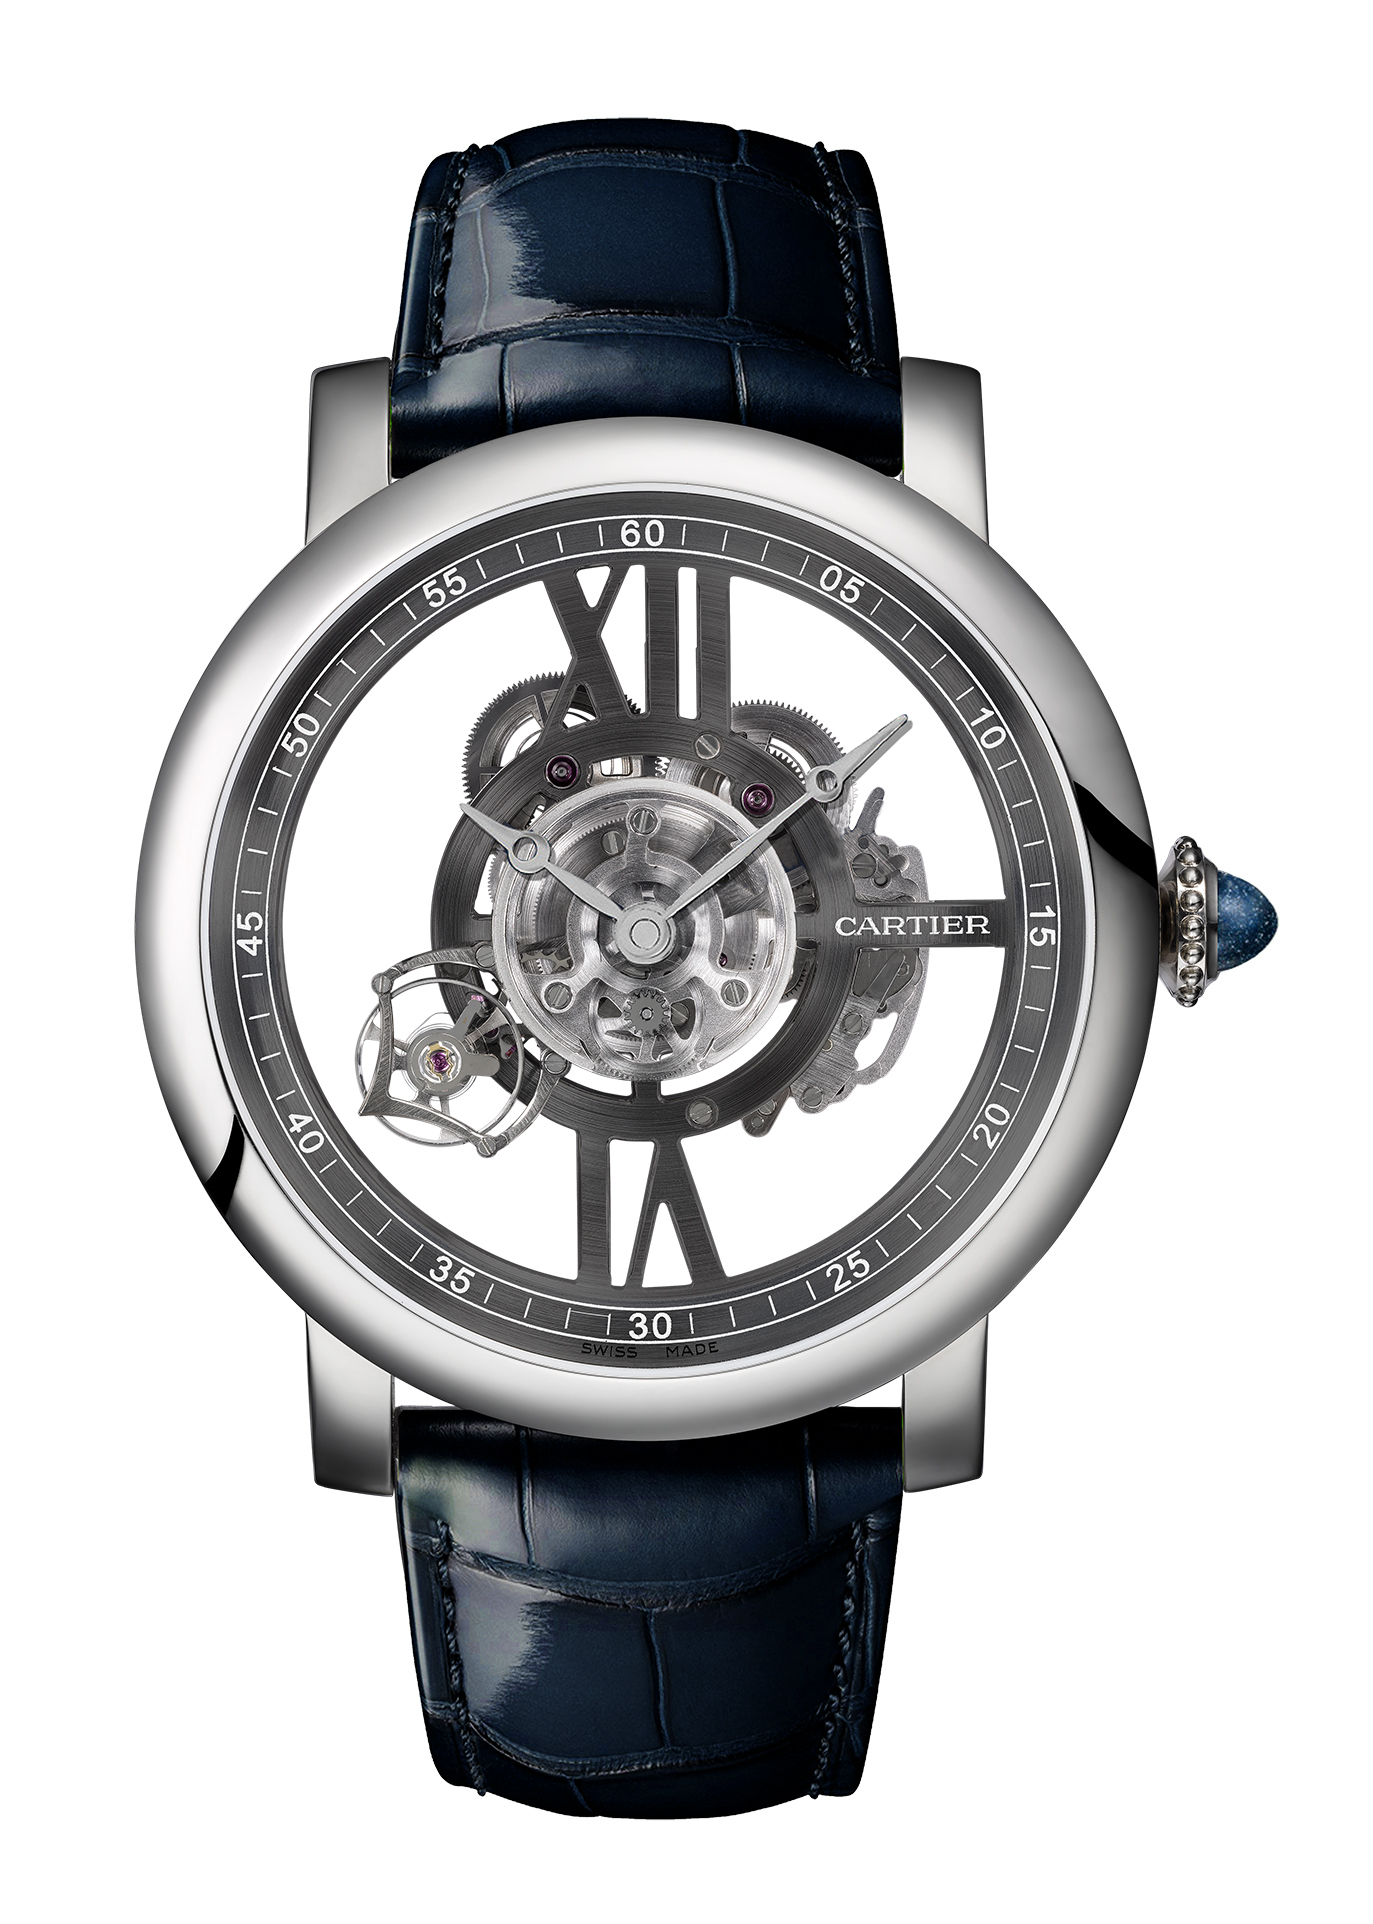 Cartier Fine Watchmaking collection